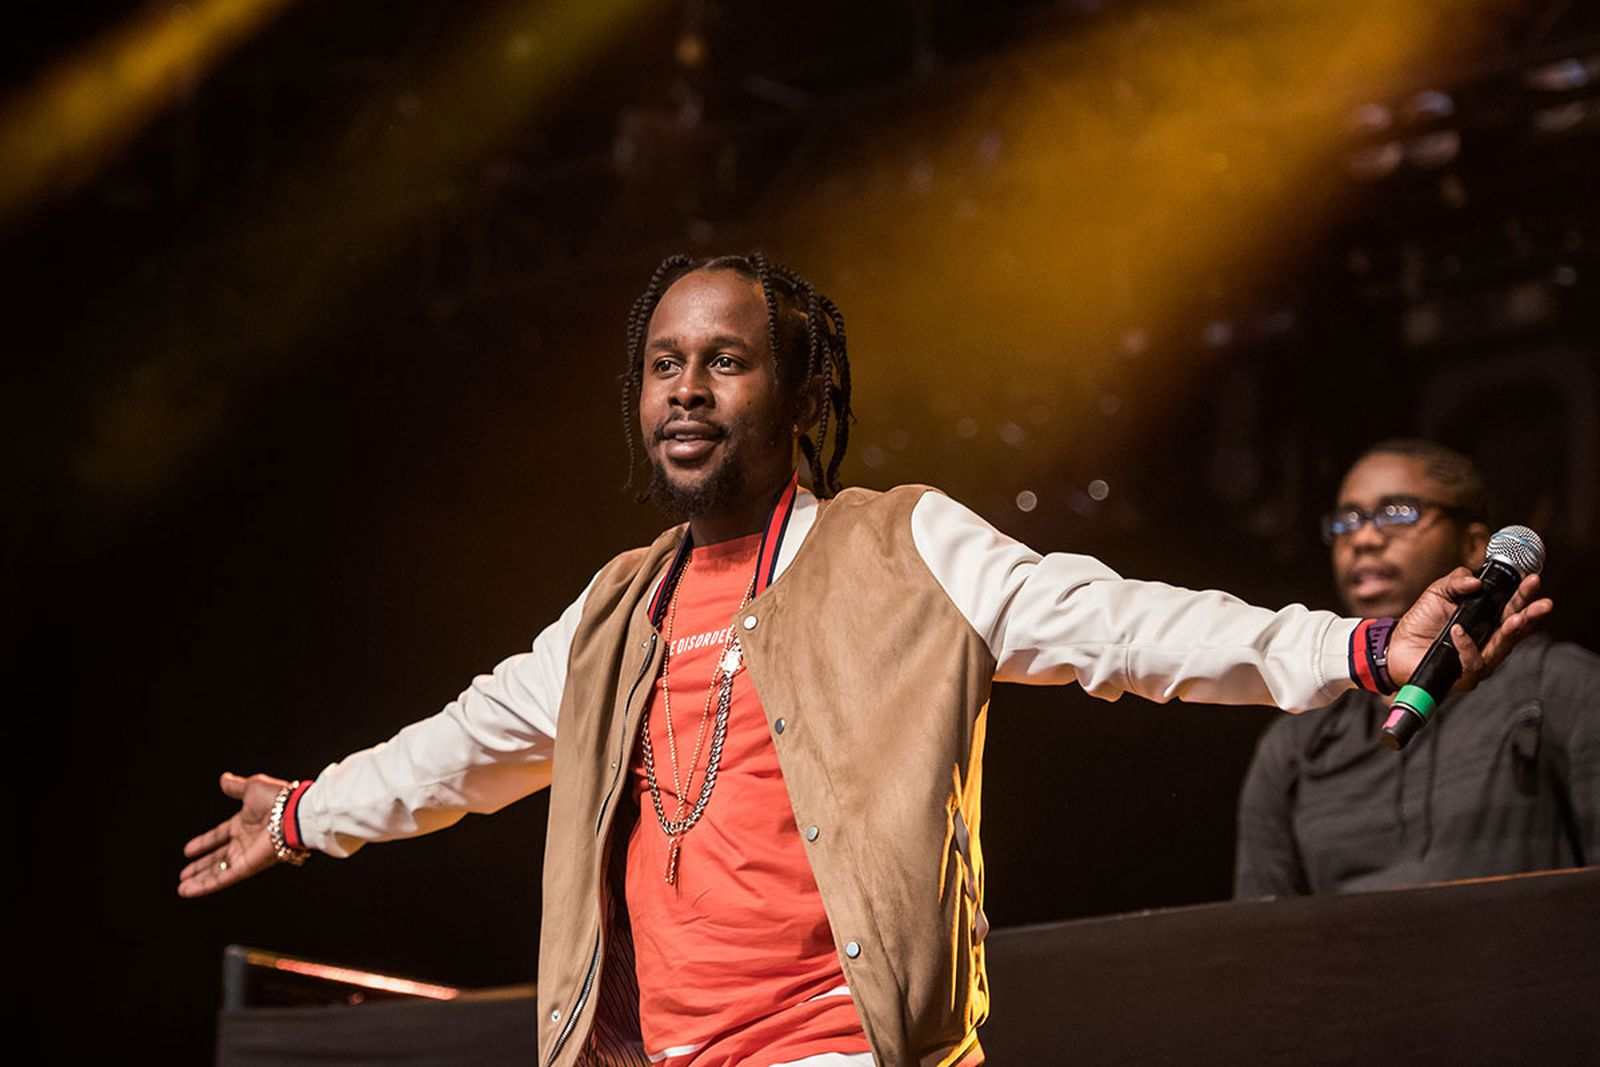 Popcaan performs at Roskilde festival